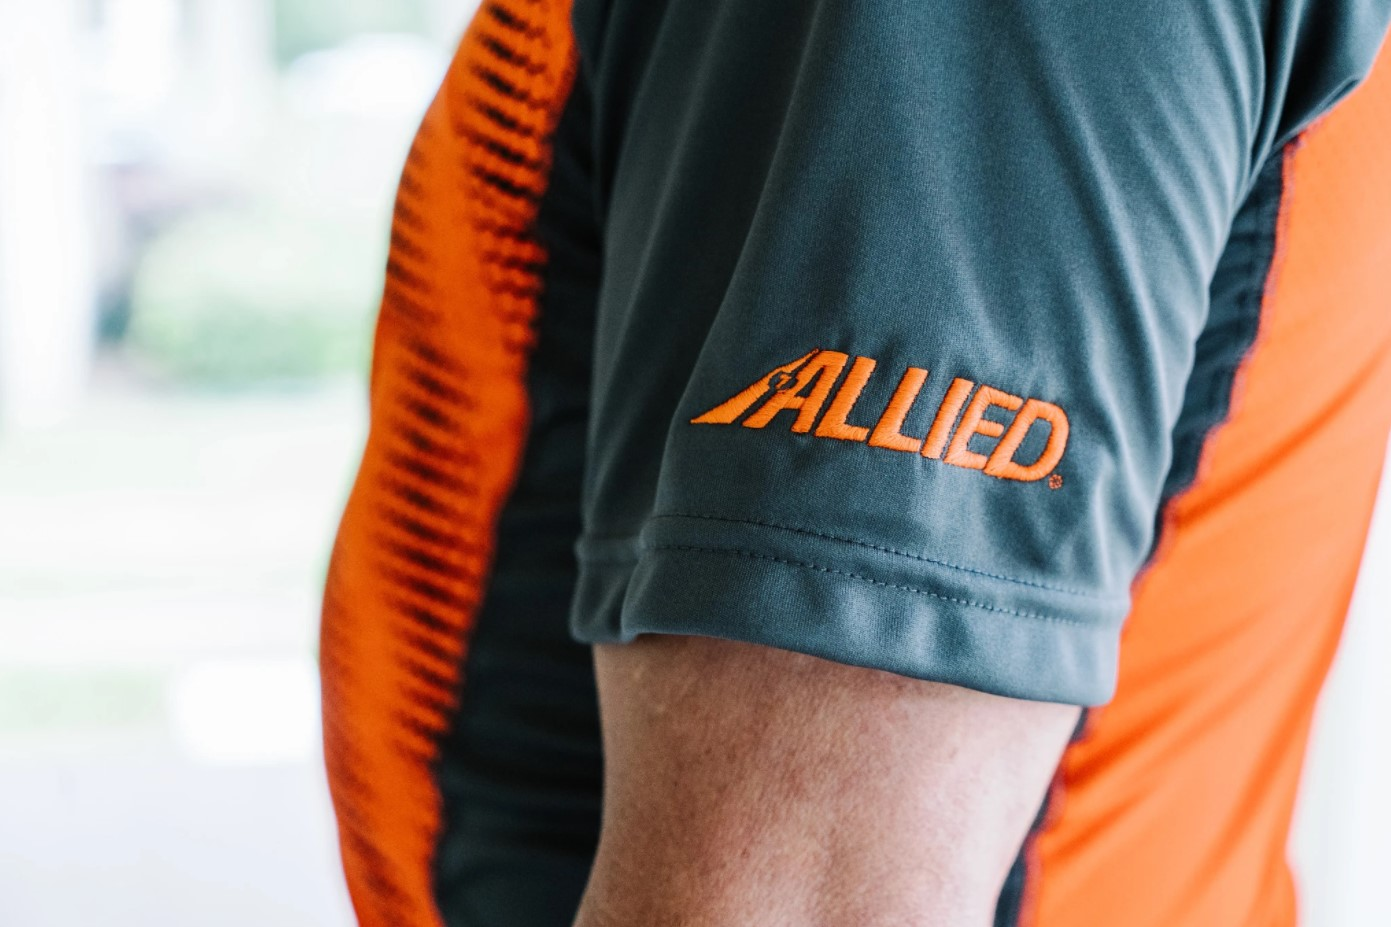 Allied Moving Shirt Sleeve